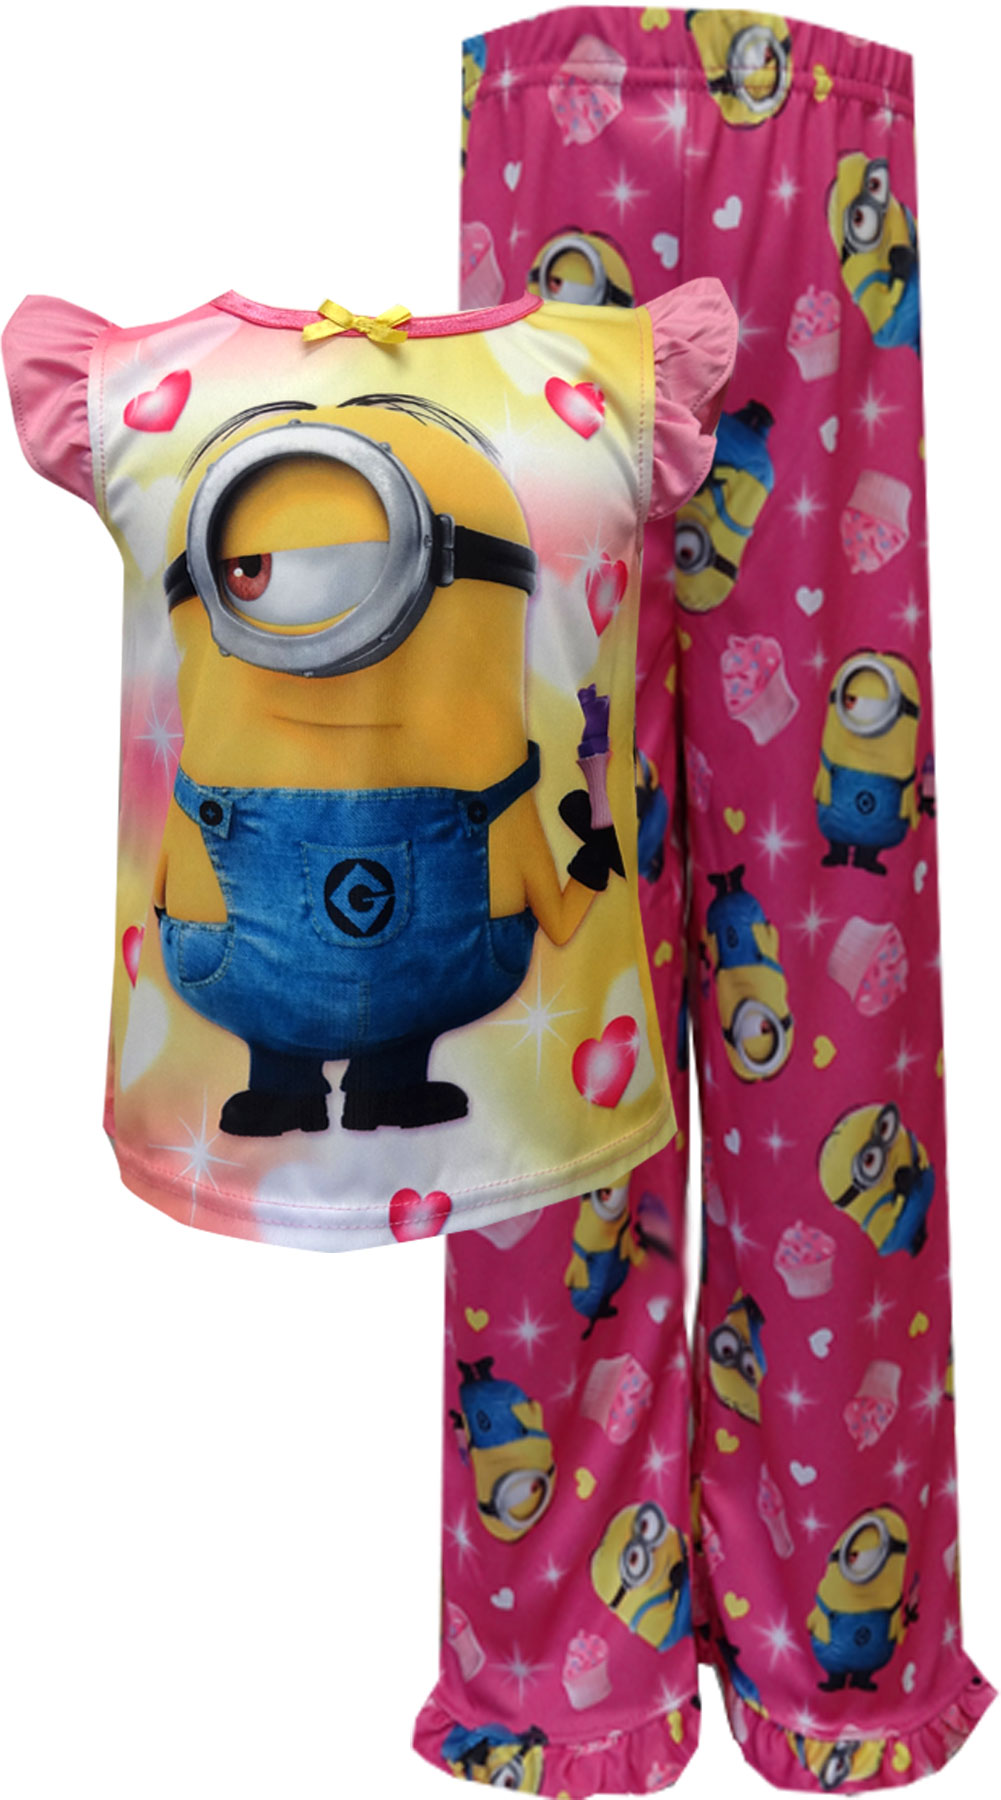 Image of Despicable Me 2 Minions Cupcake Toddler Pajamas for girls